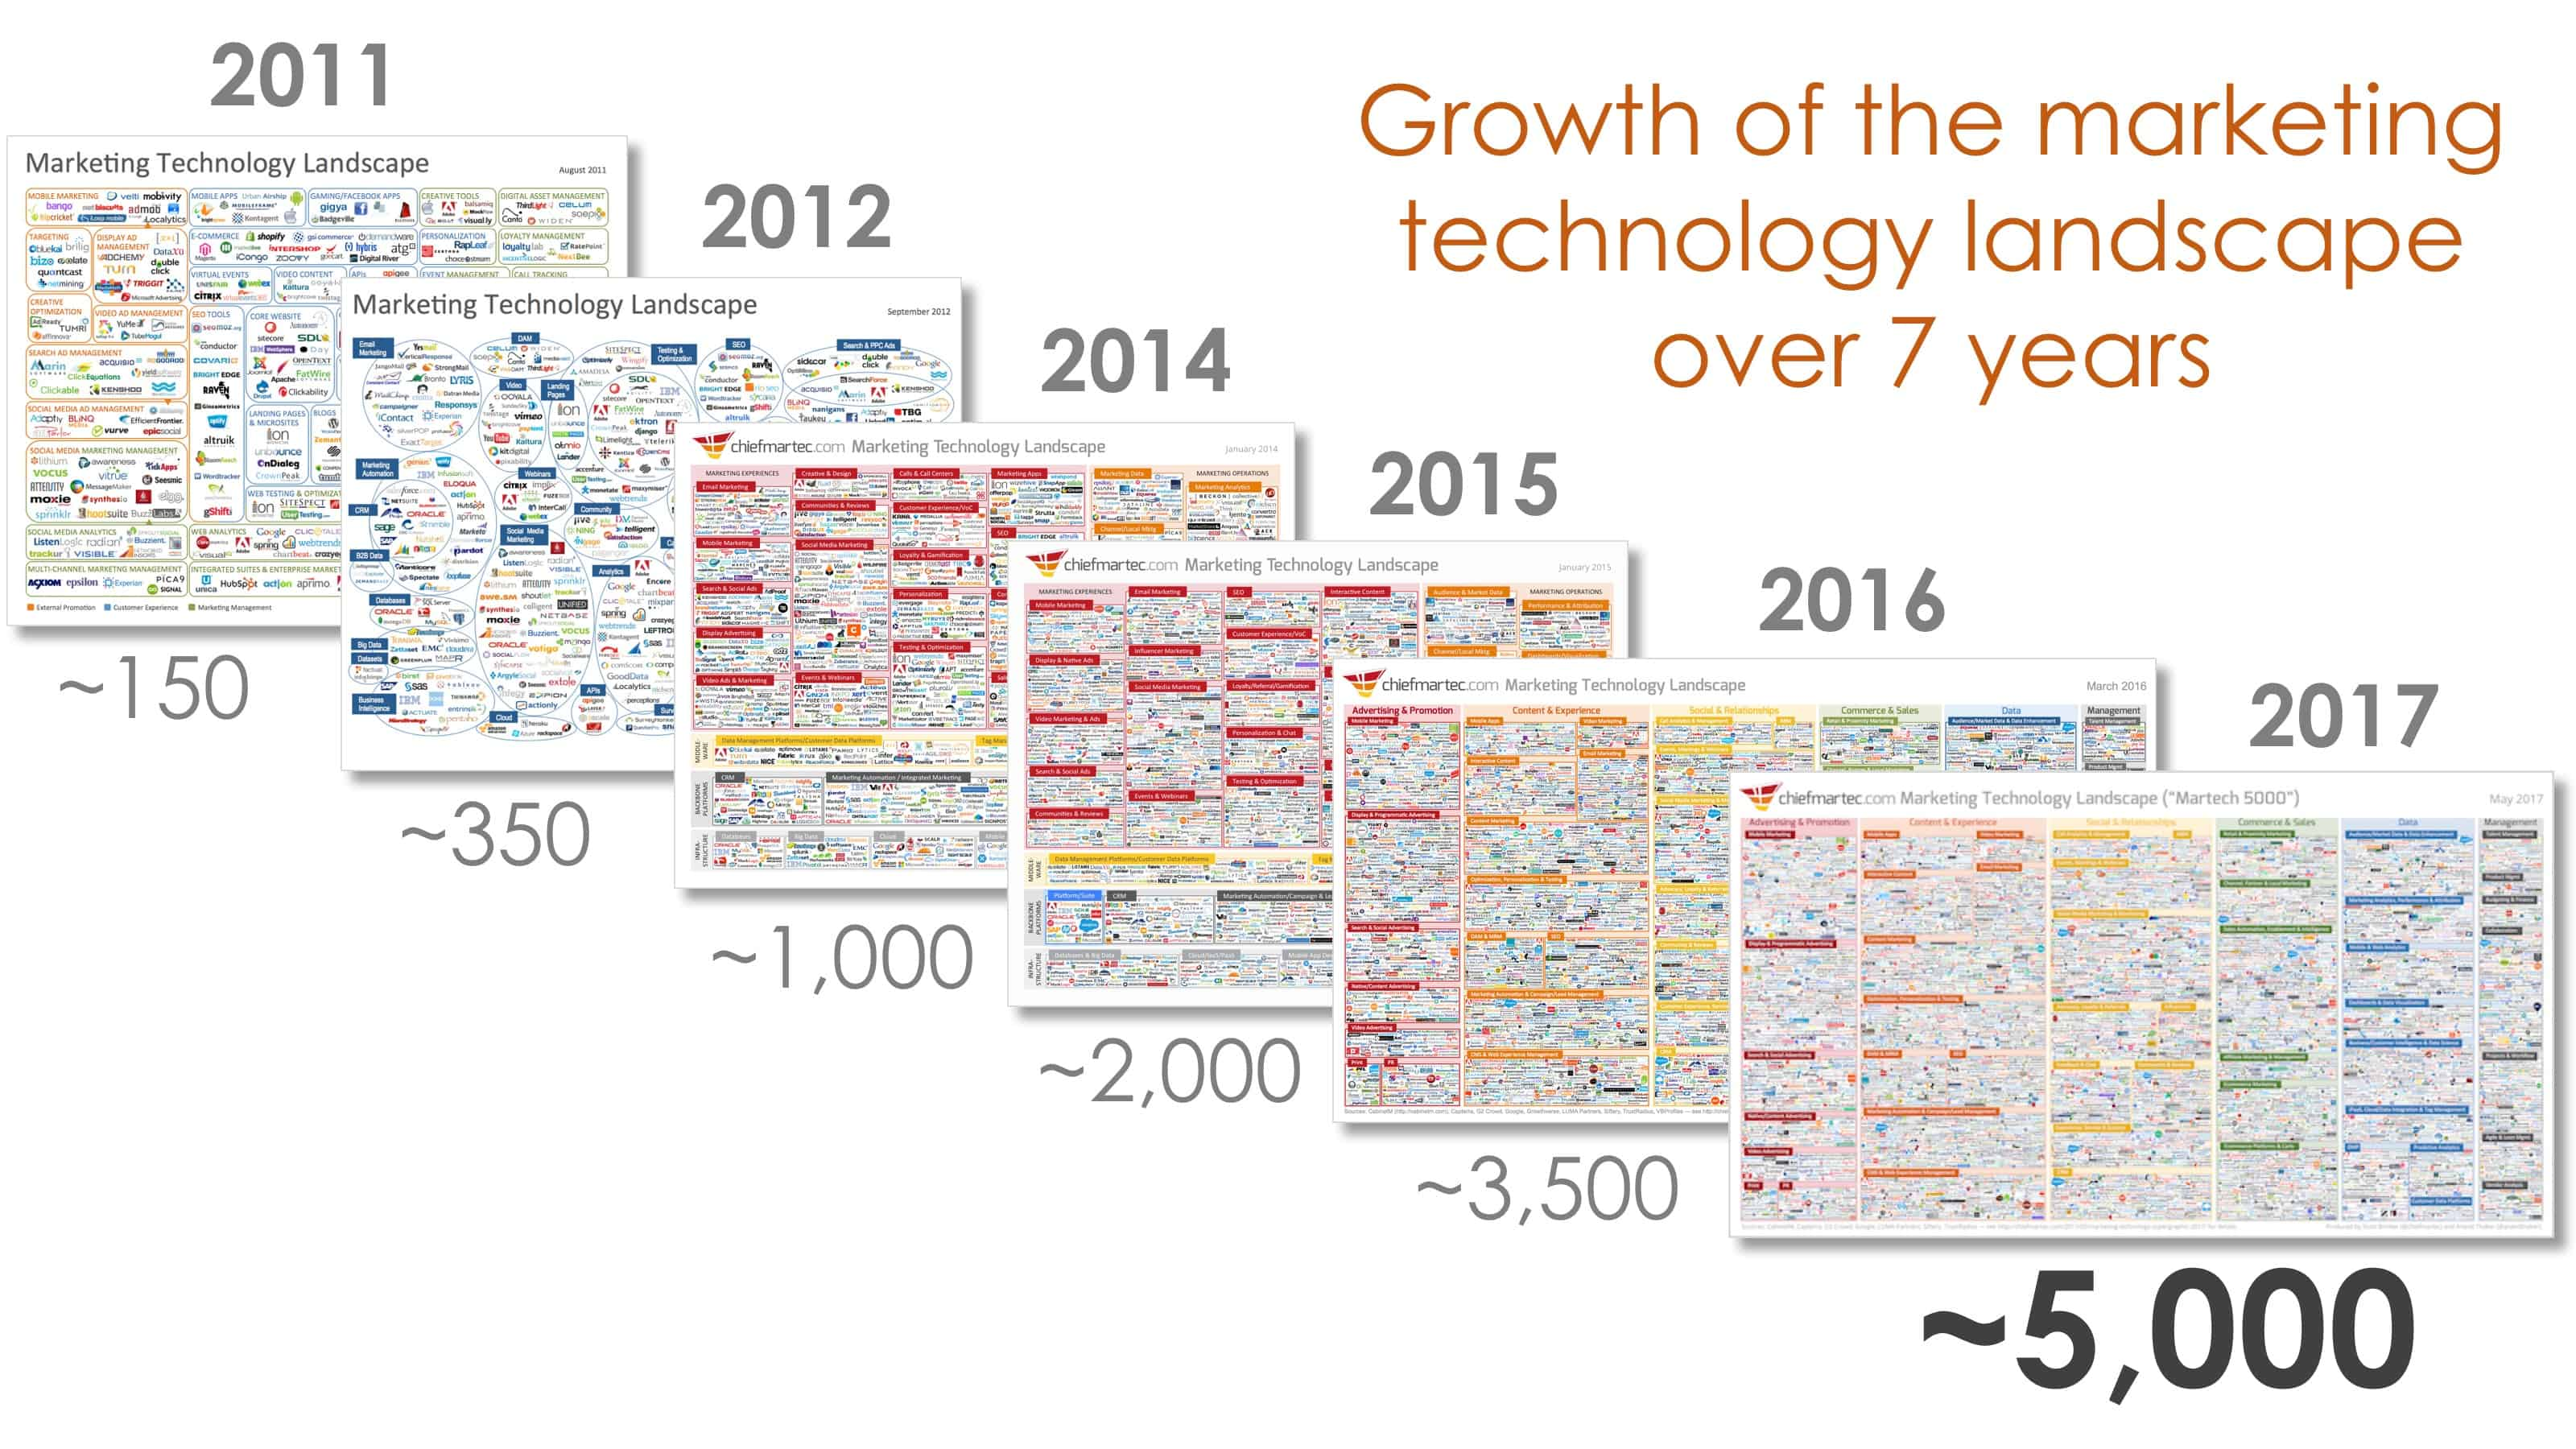 martech landscape over 7 years et le marketing channel | I and YOO agence inbound amrketing